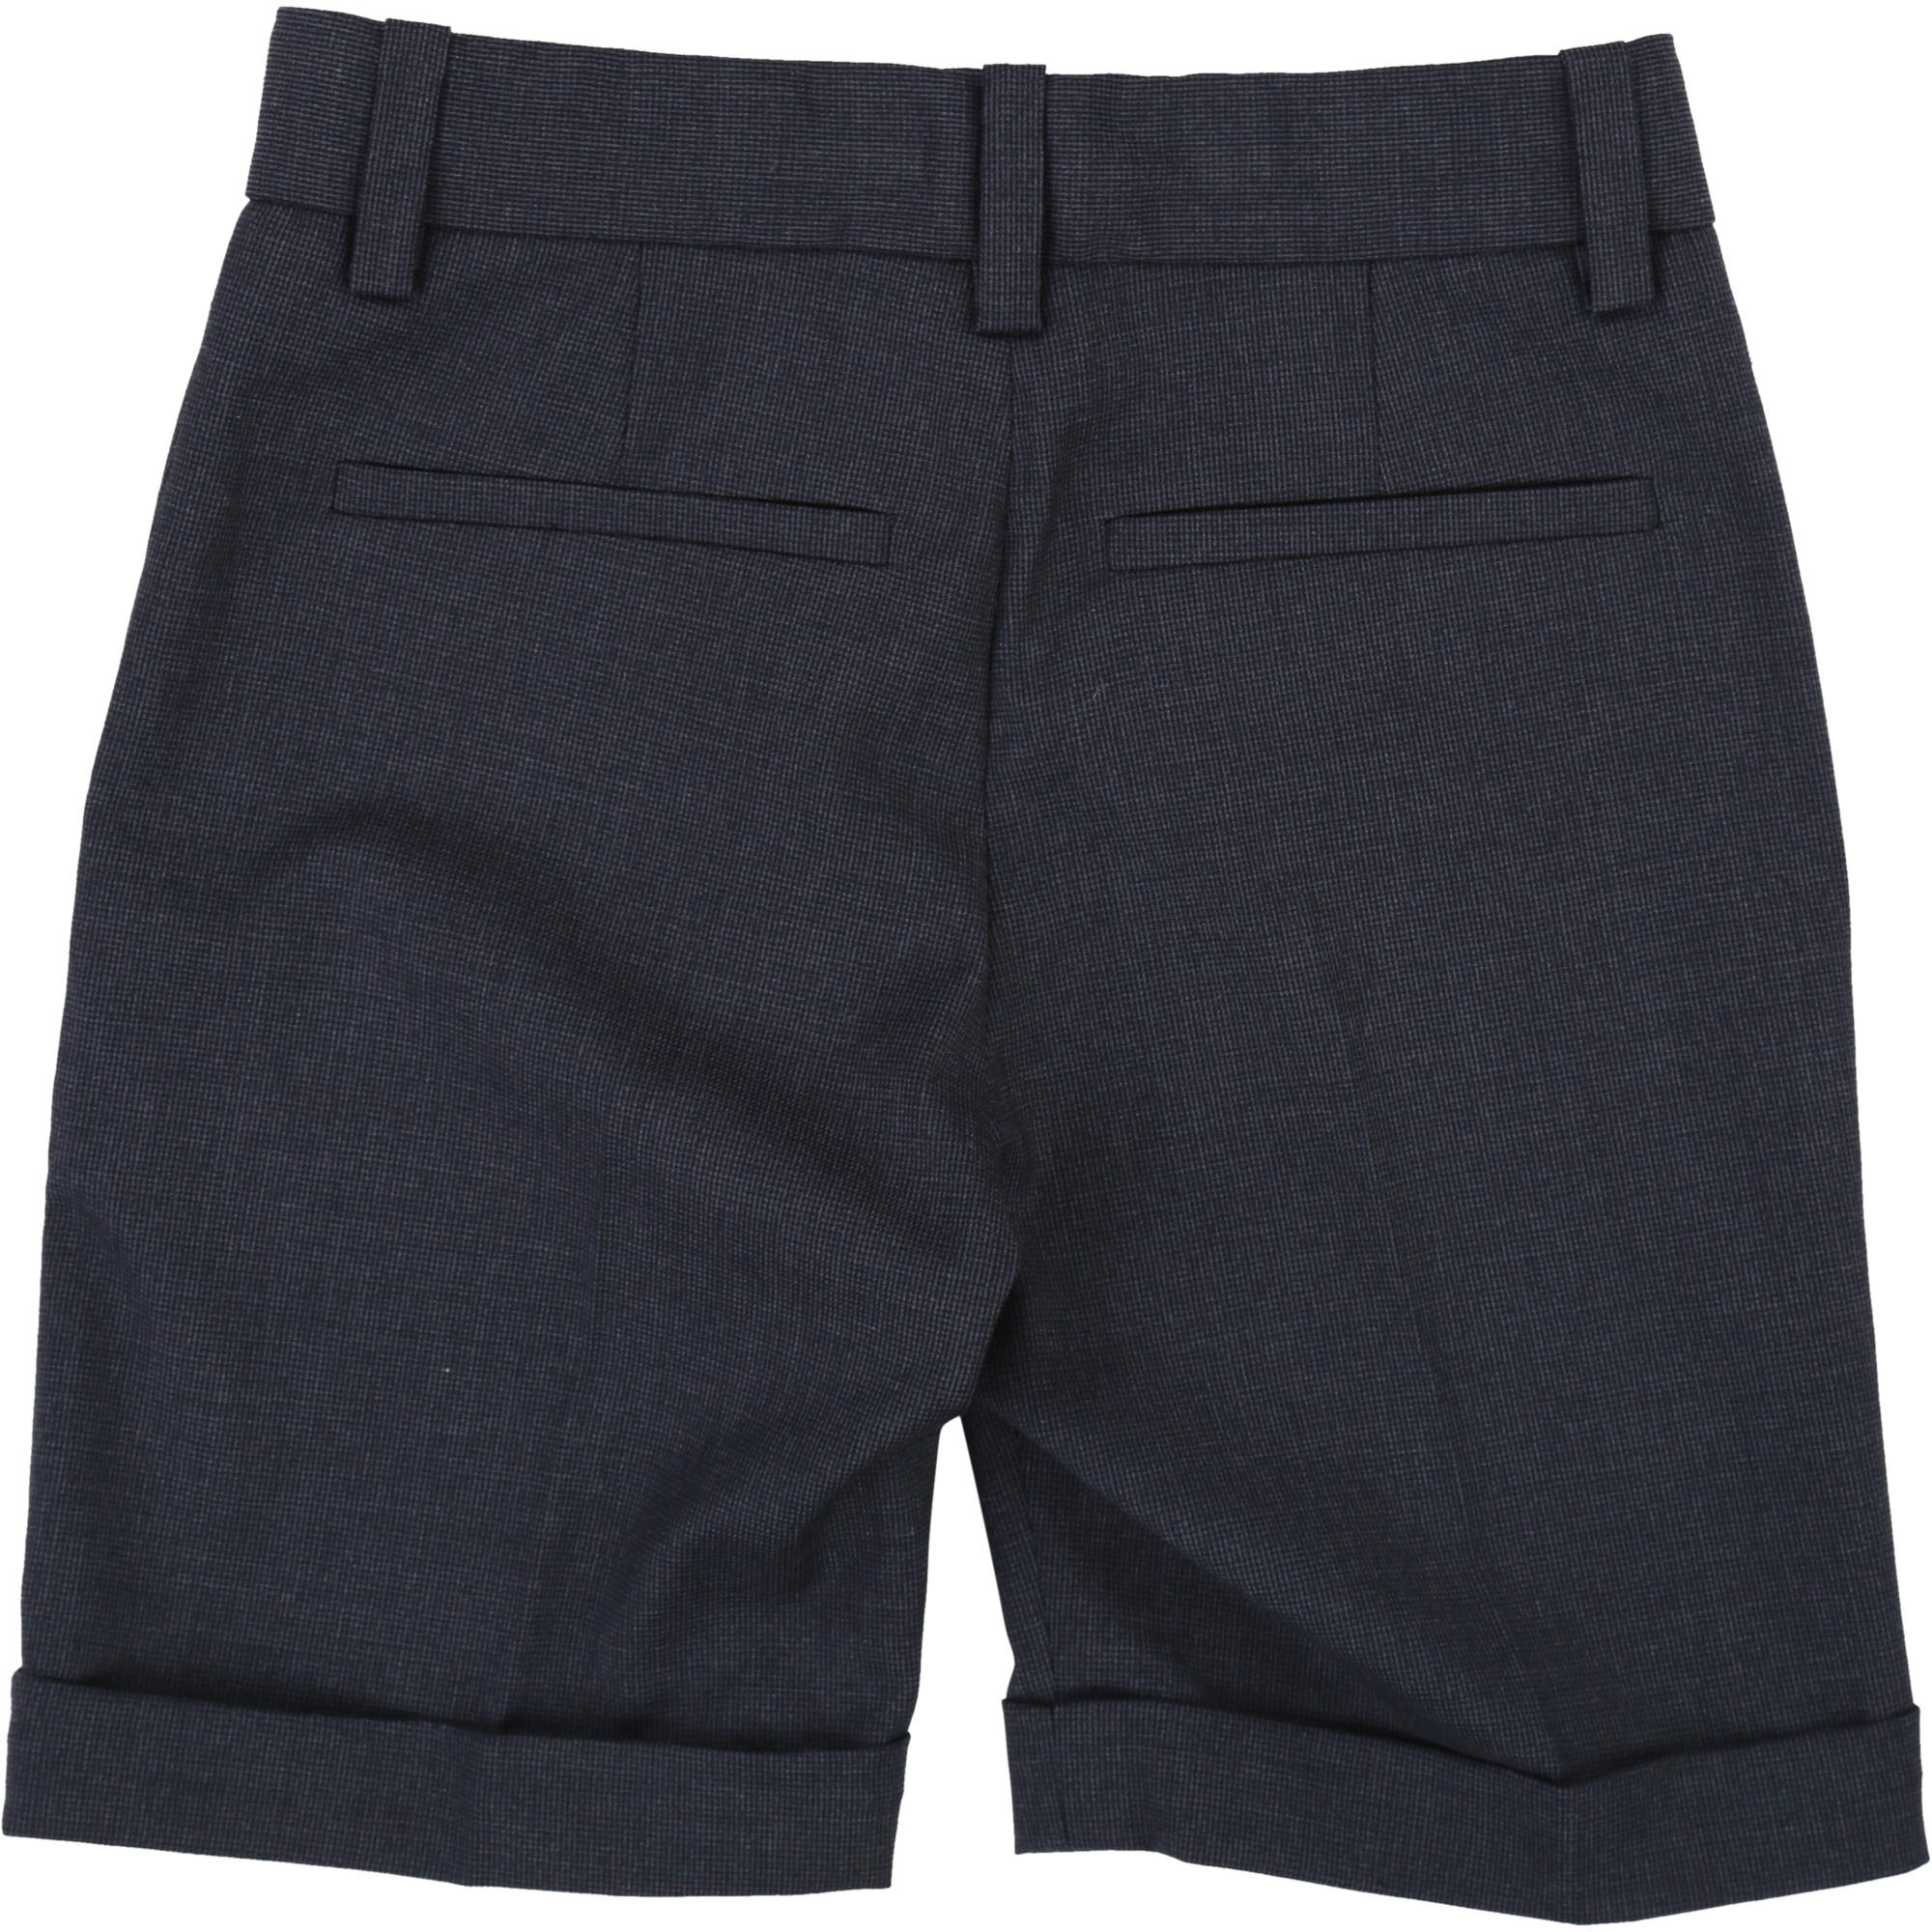 Formal bermuda shorts THE MARC JACOBS for BOY